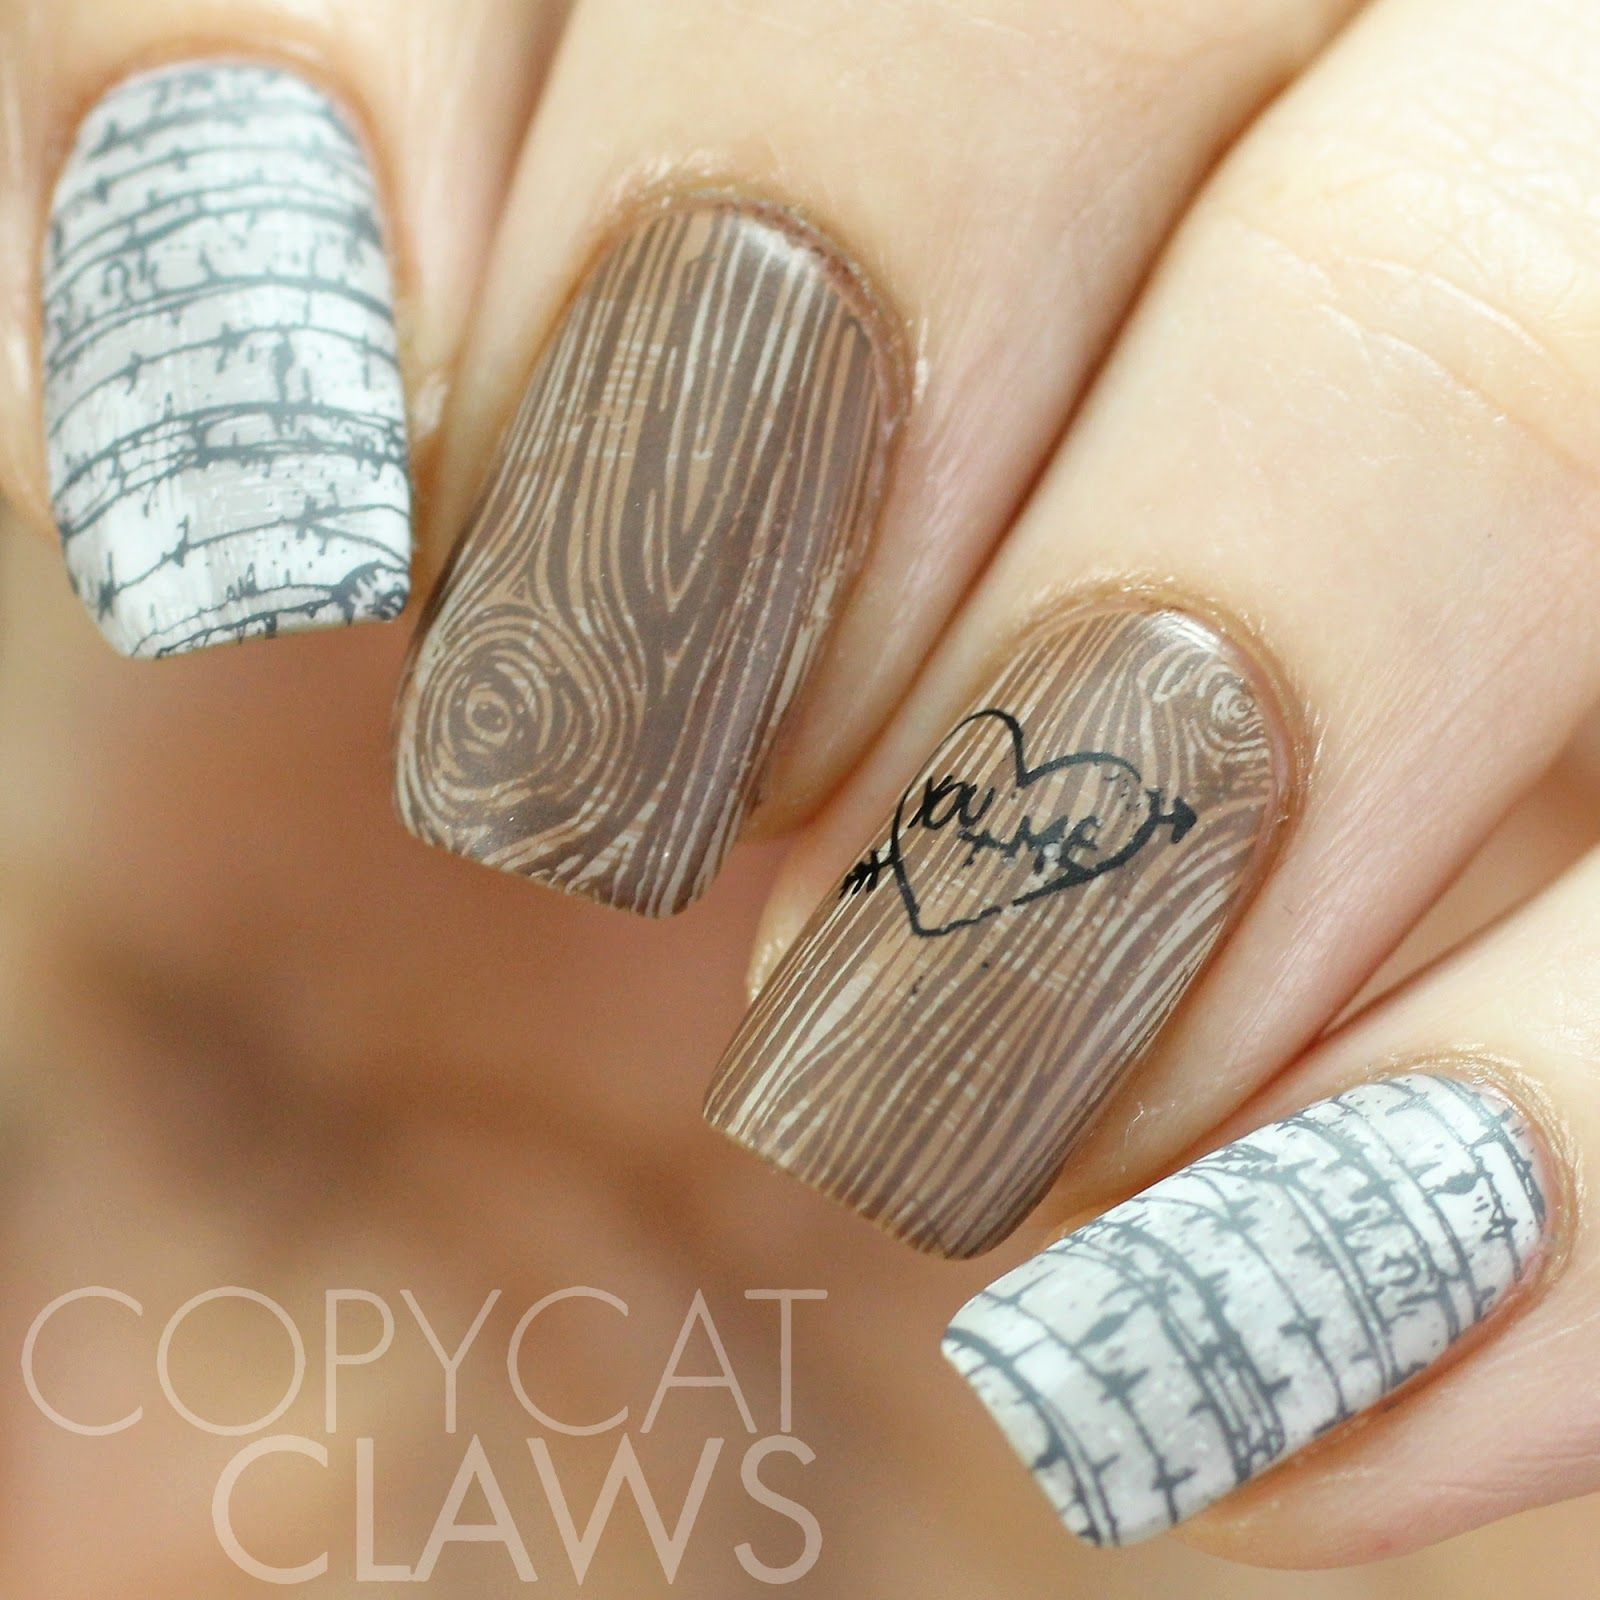 Uberchic stamping plate review uc copycat claws nail